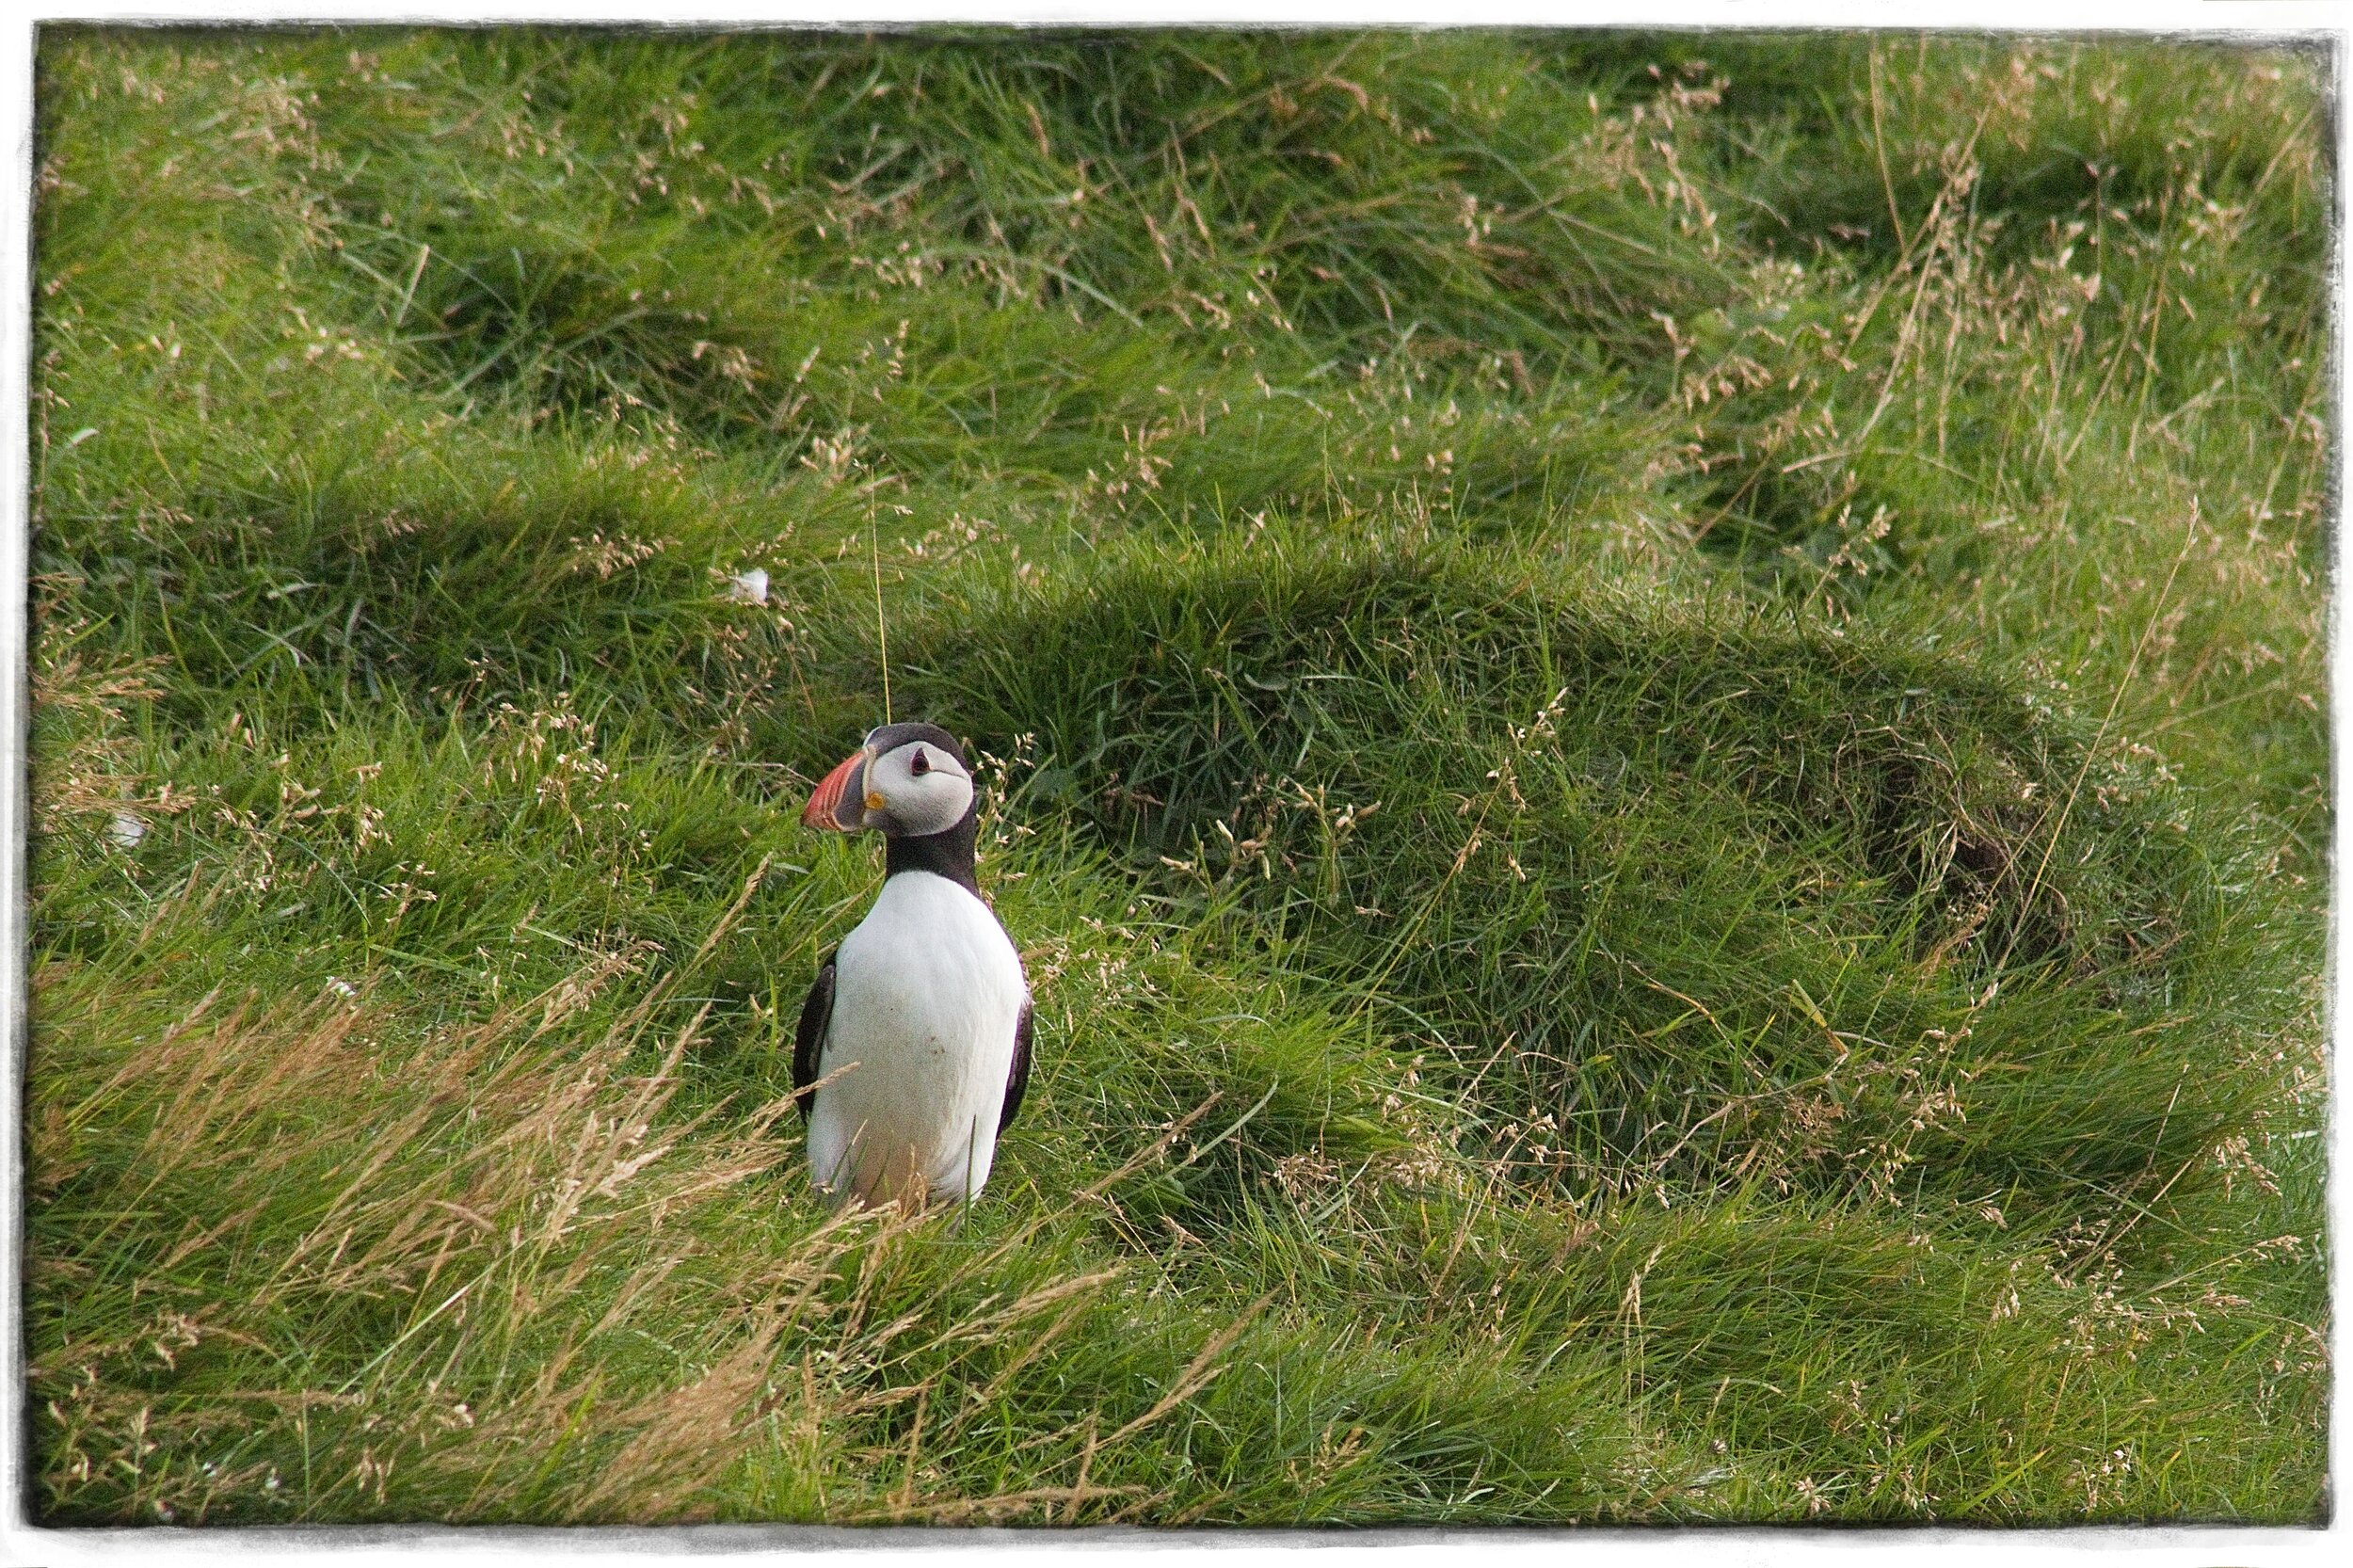 Finally! A puffin!  Photo by Michael Mundt.